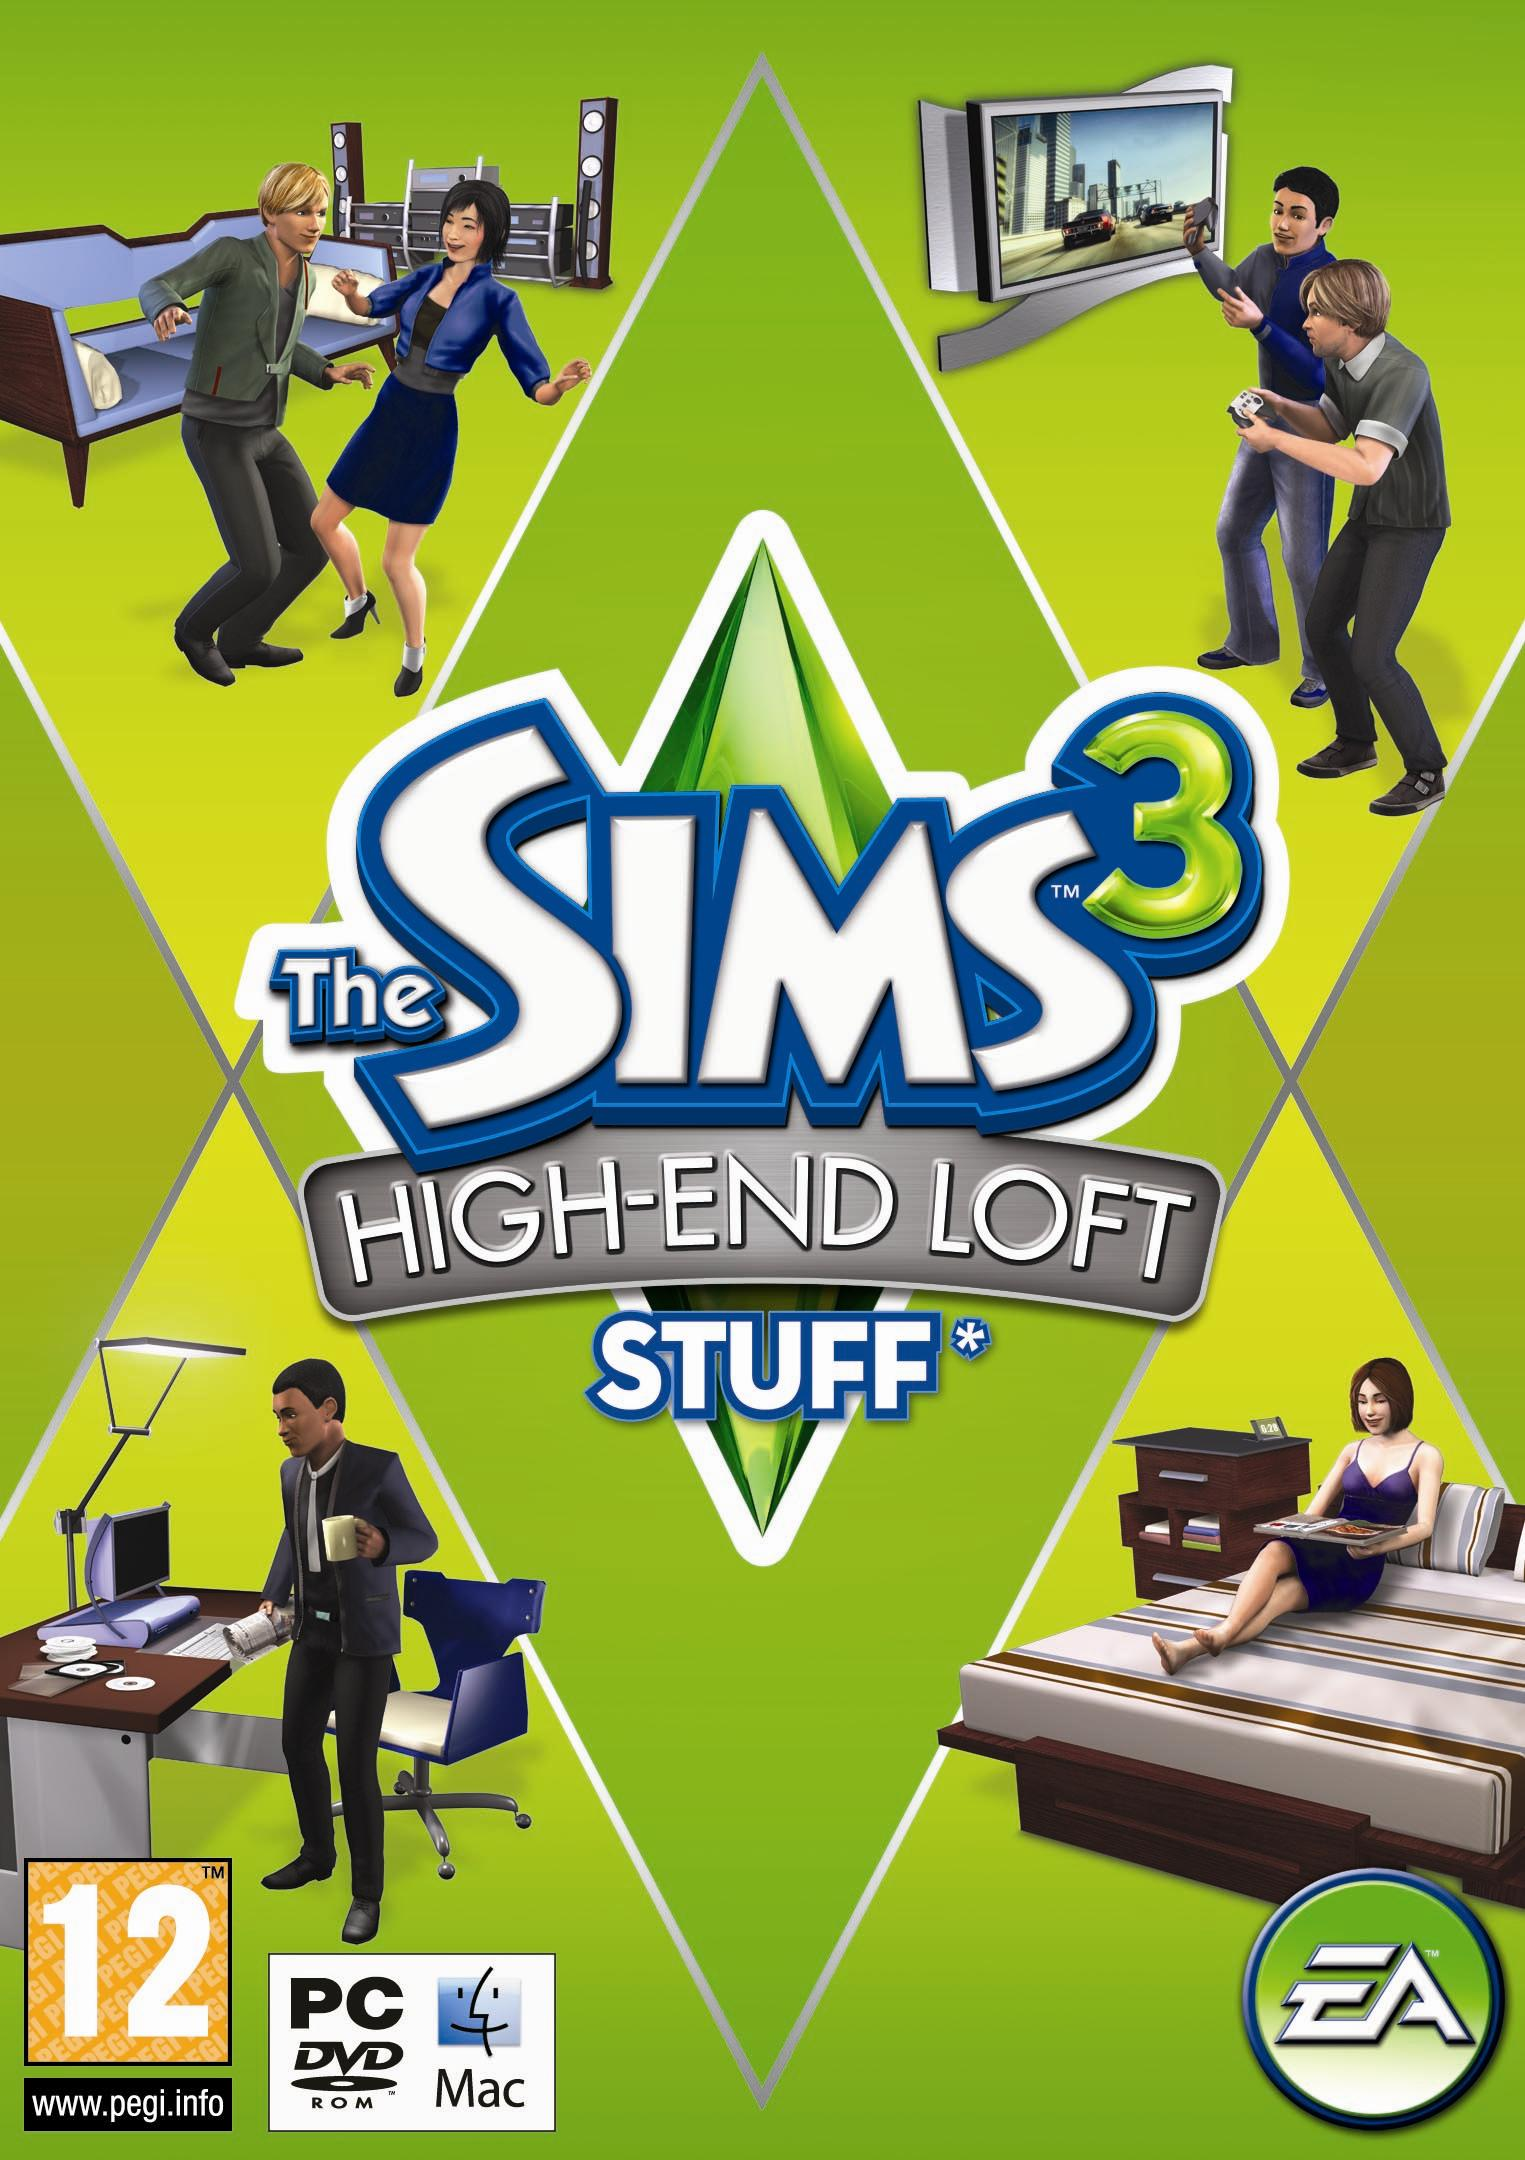 The Sims 3 High End Loft Stuff (REGION FREE/MULTILANG)